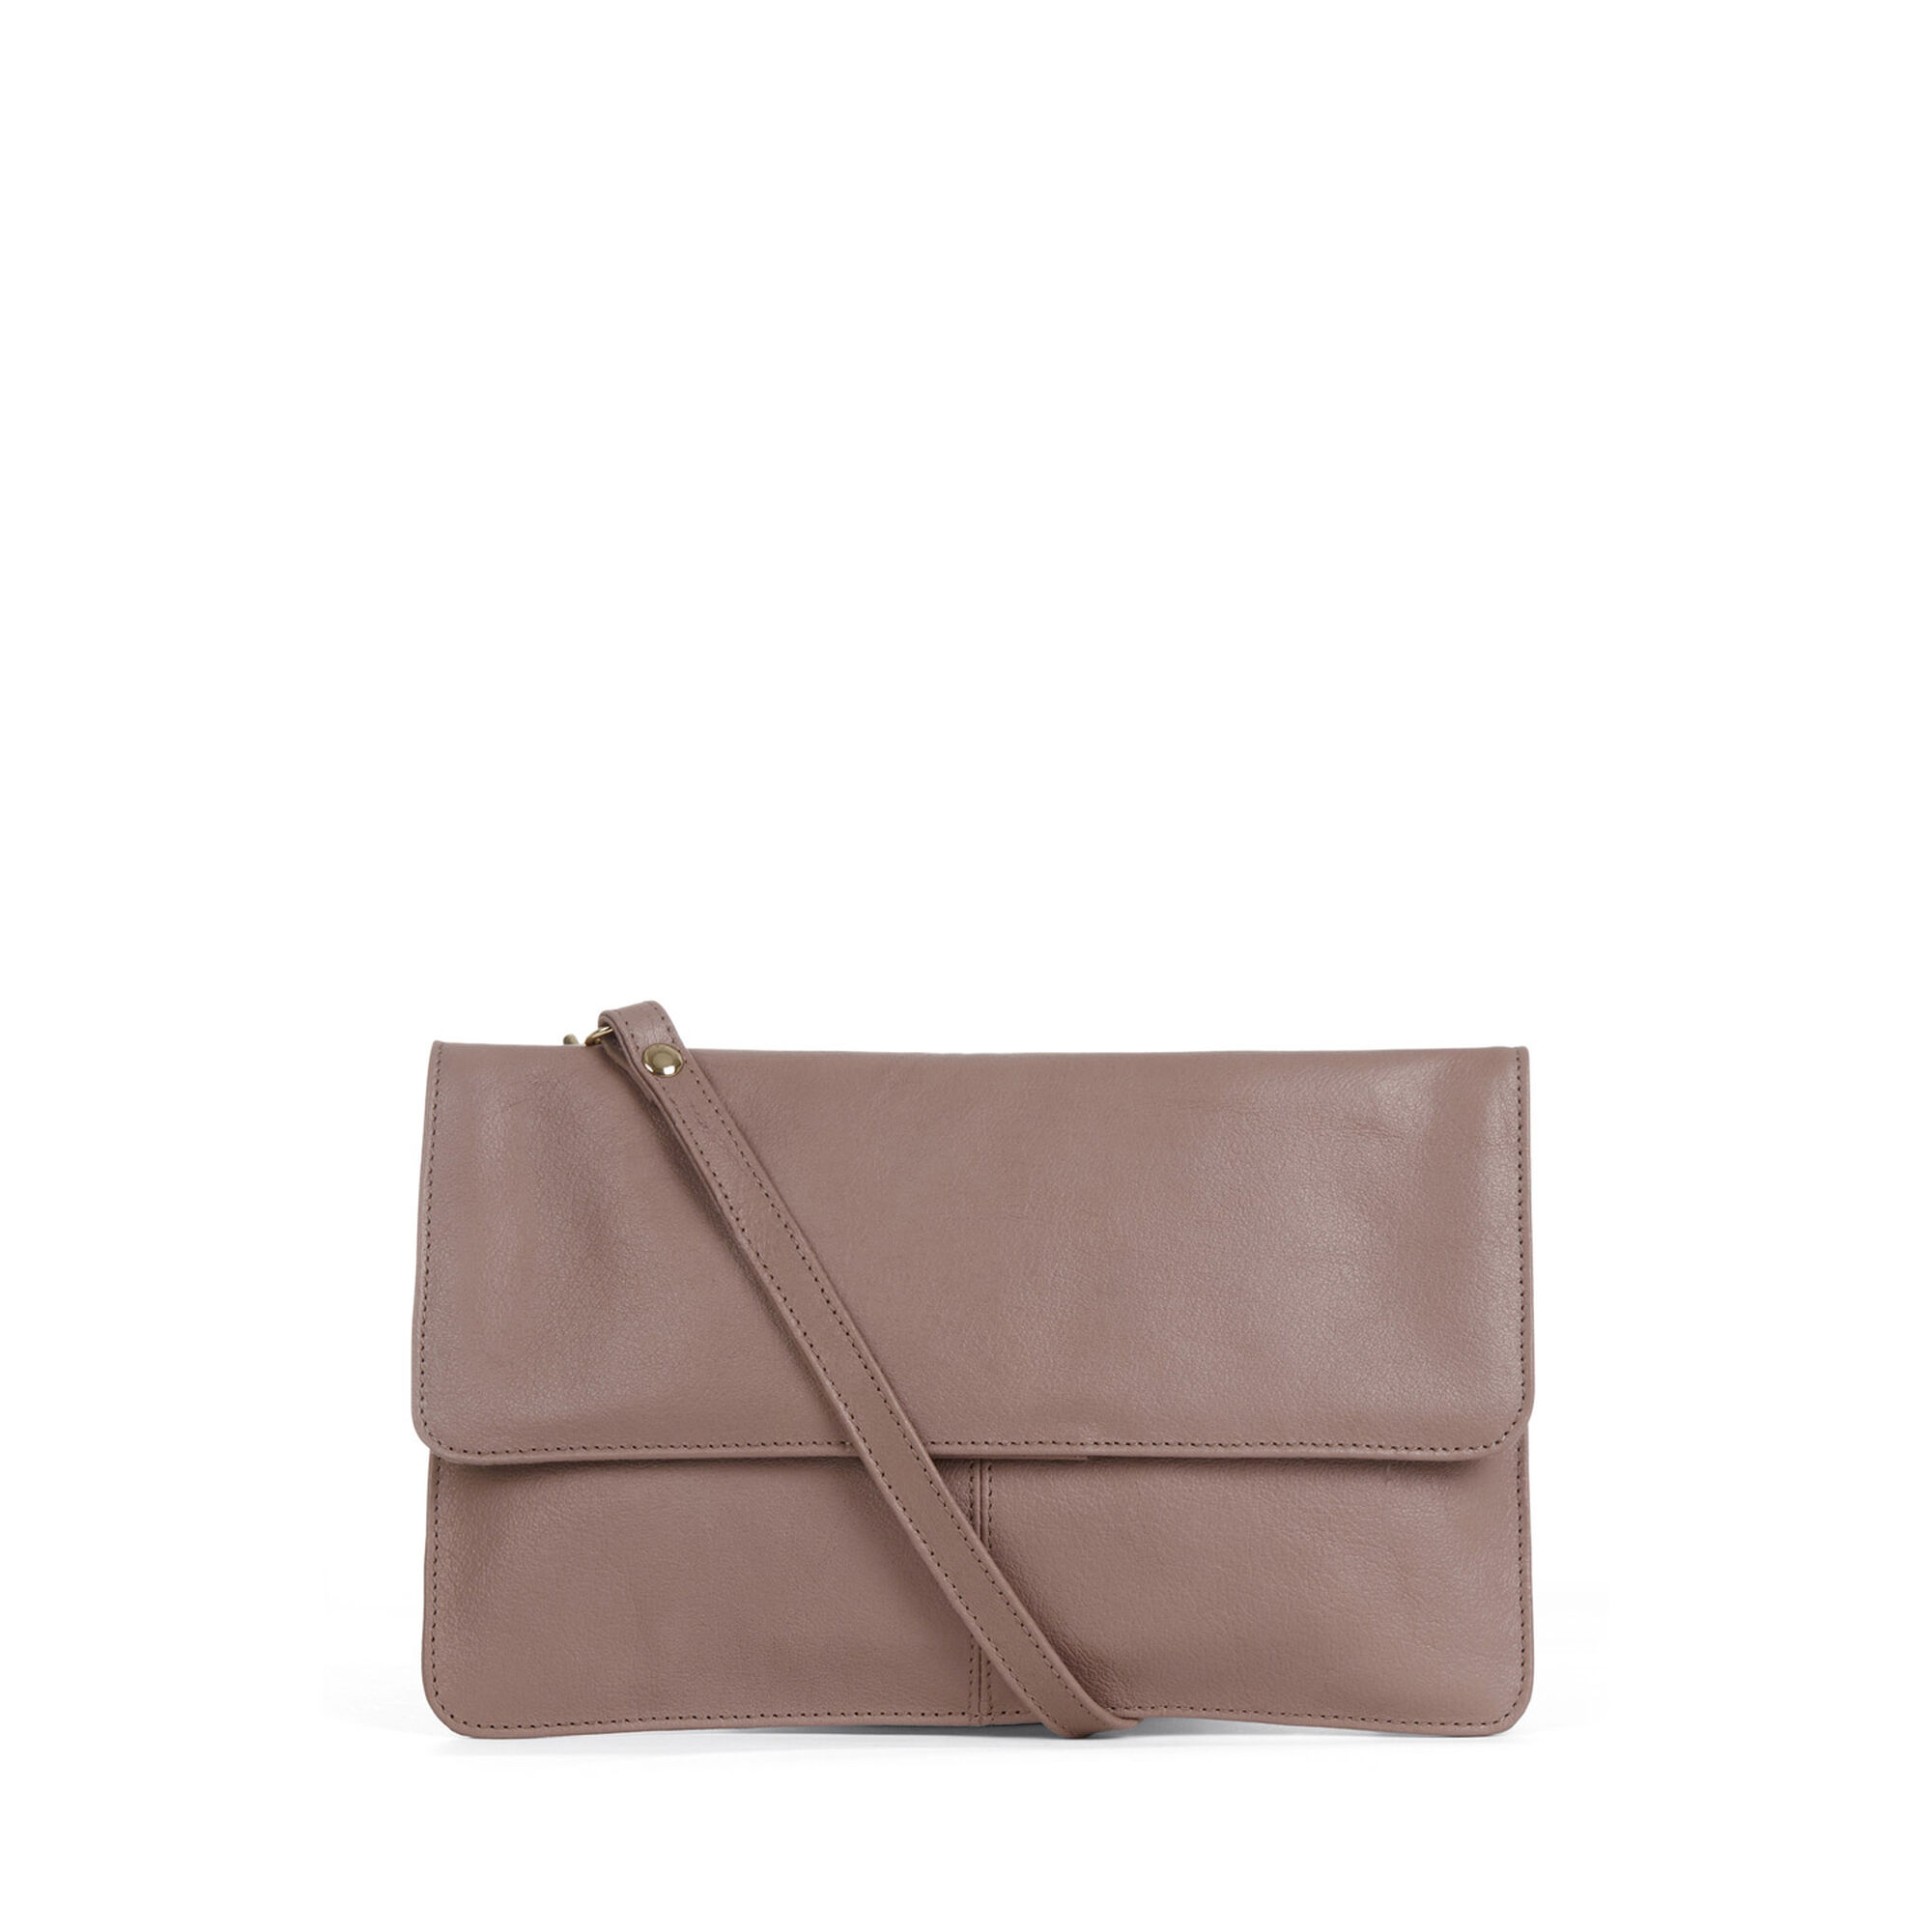 Warehouse, Clean Leather Crossbody Bag Mink 1